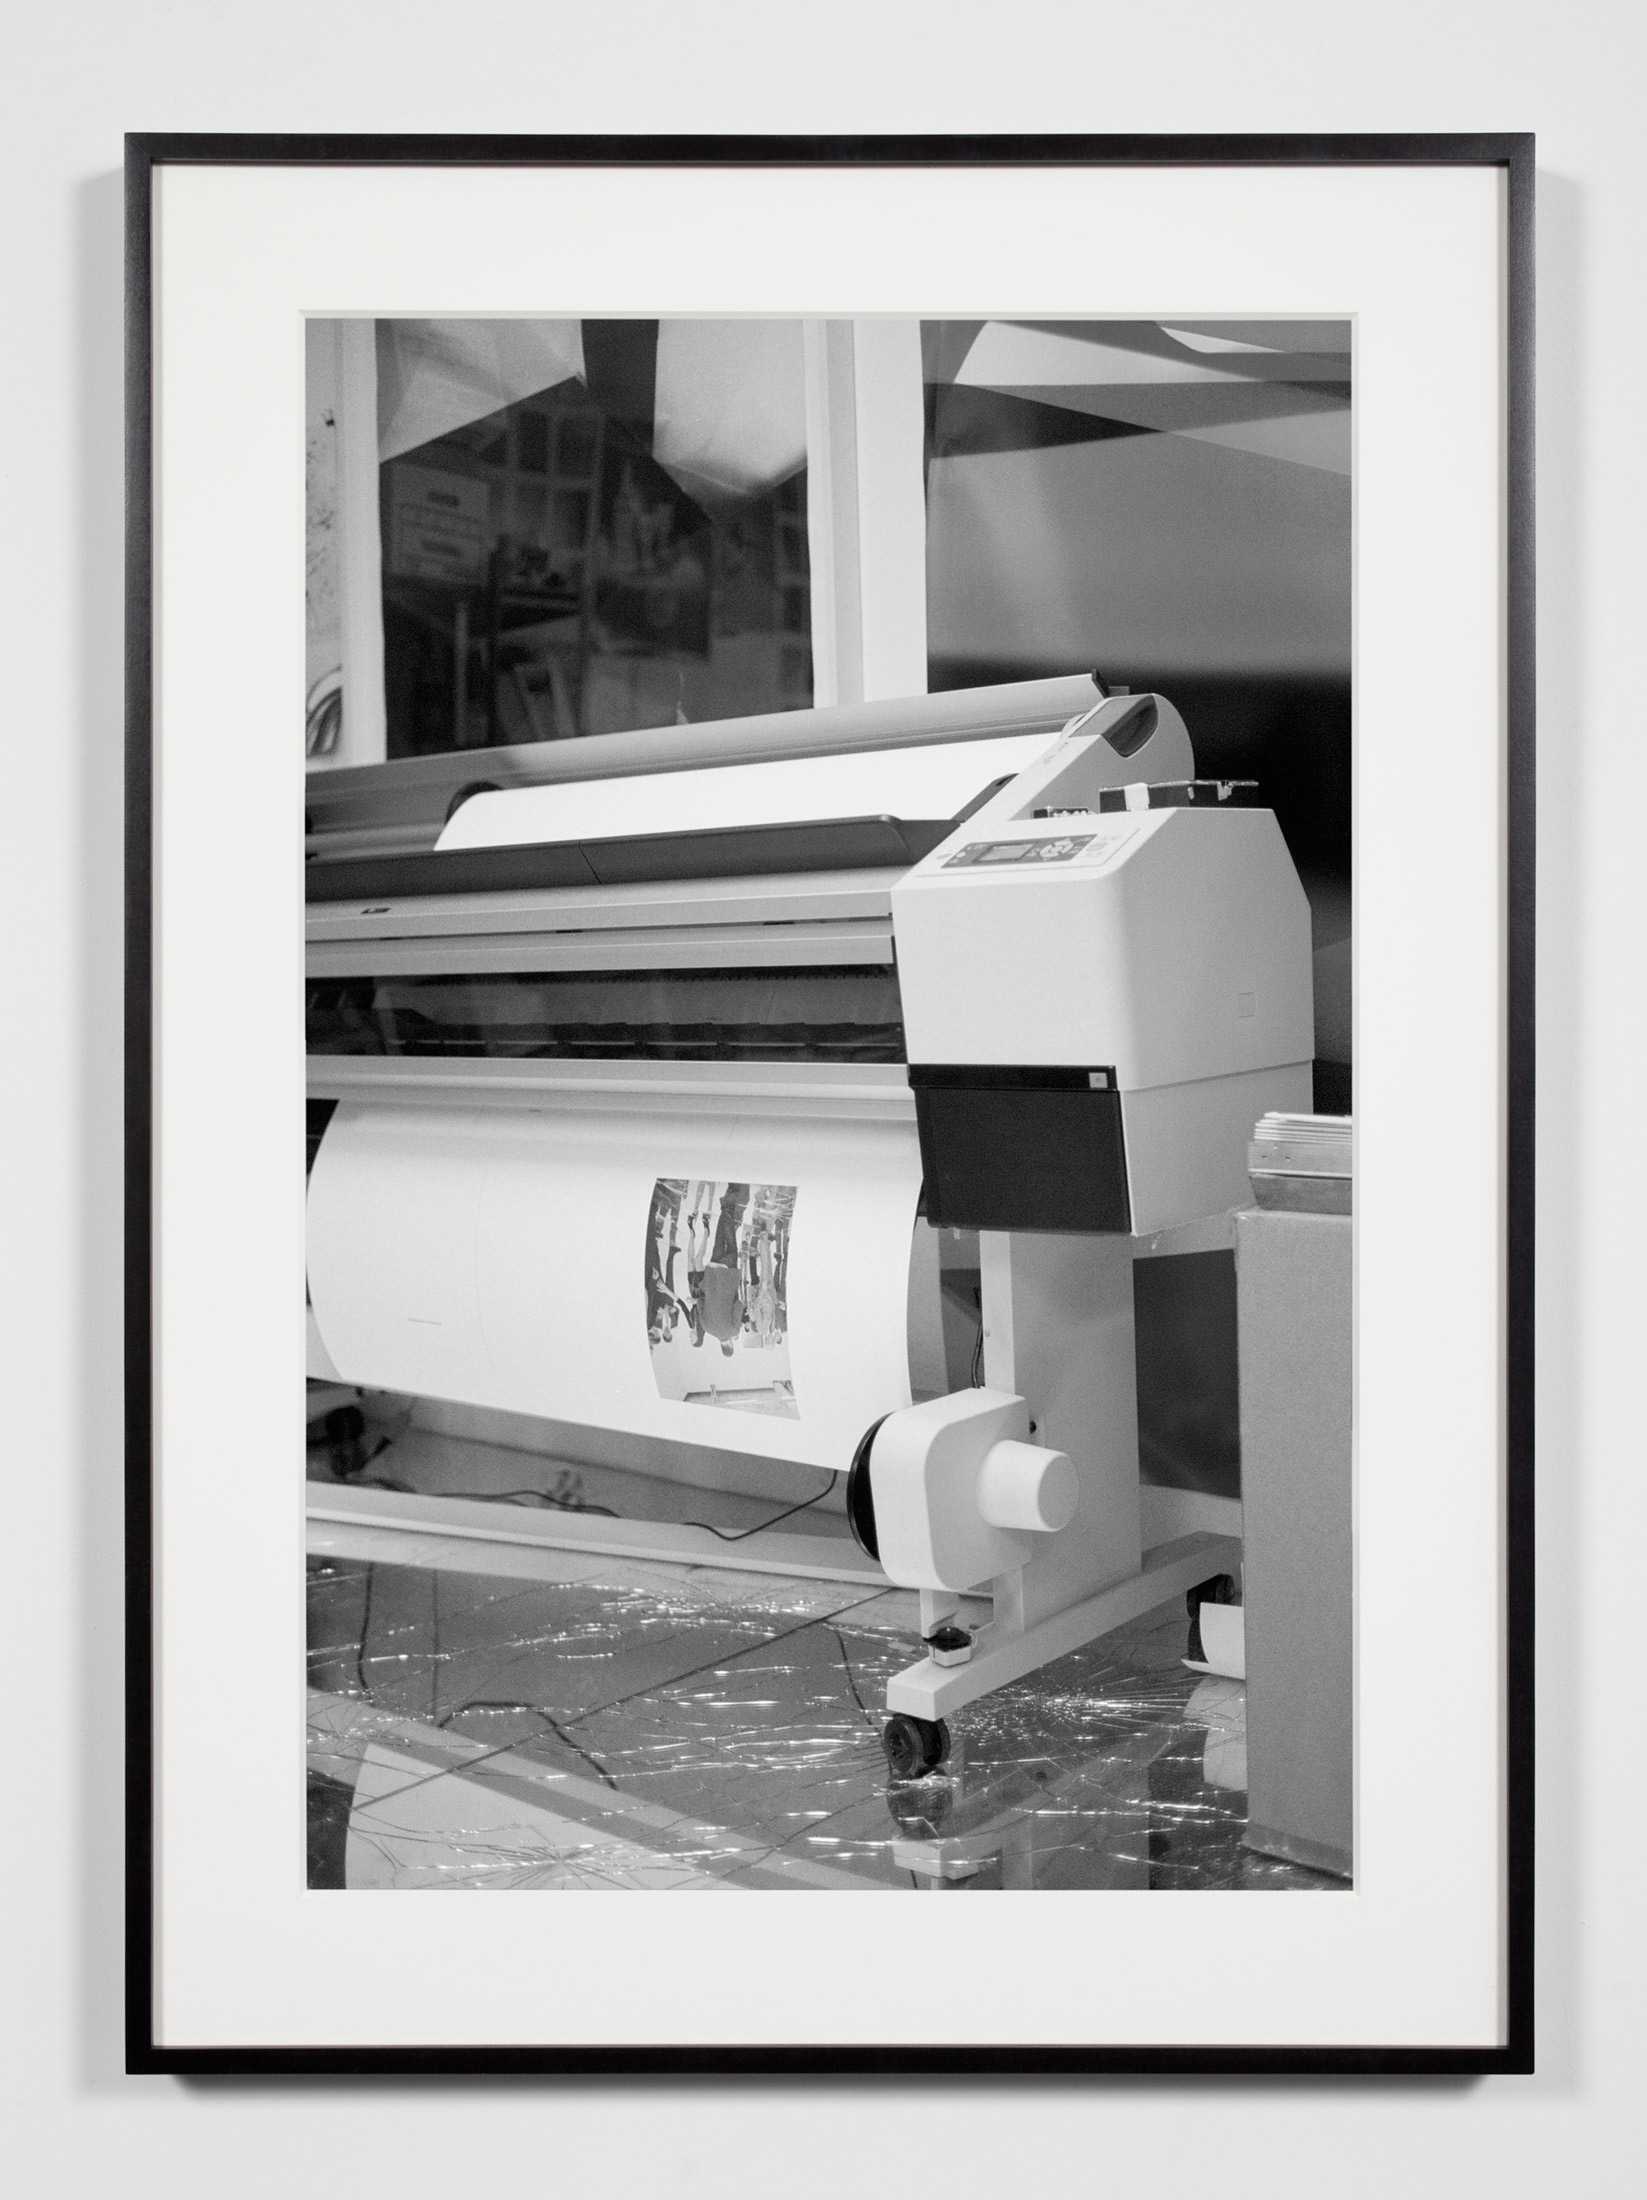 Artist Studio, Wide-Format Inkjet Printer, Los Angeles, California, December 9, 2010    2011   Epson Ultrachrome K3 archival ink jet print on Hahnemühle Photo Rag paper  36 3/8 x 26 3/8 inches   A Diagram of Forces, 2011